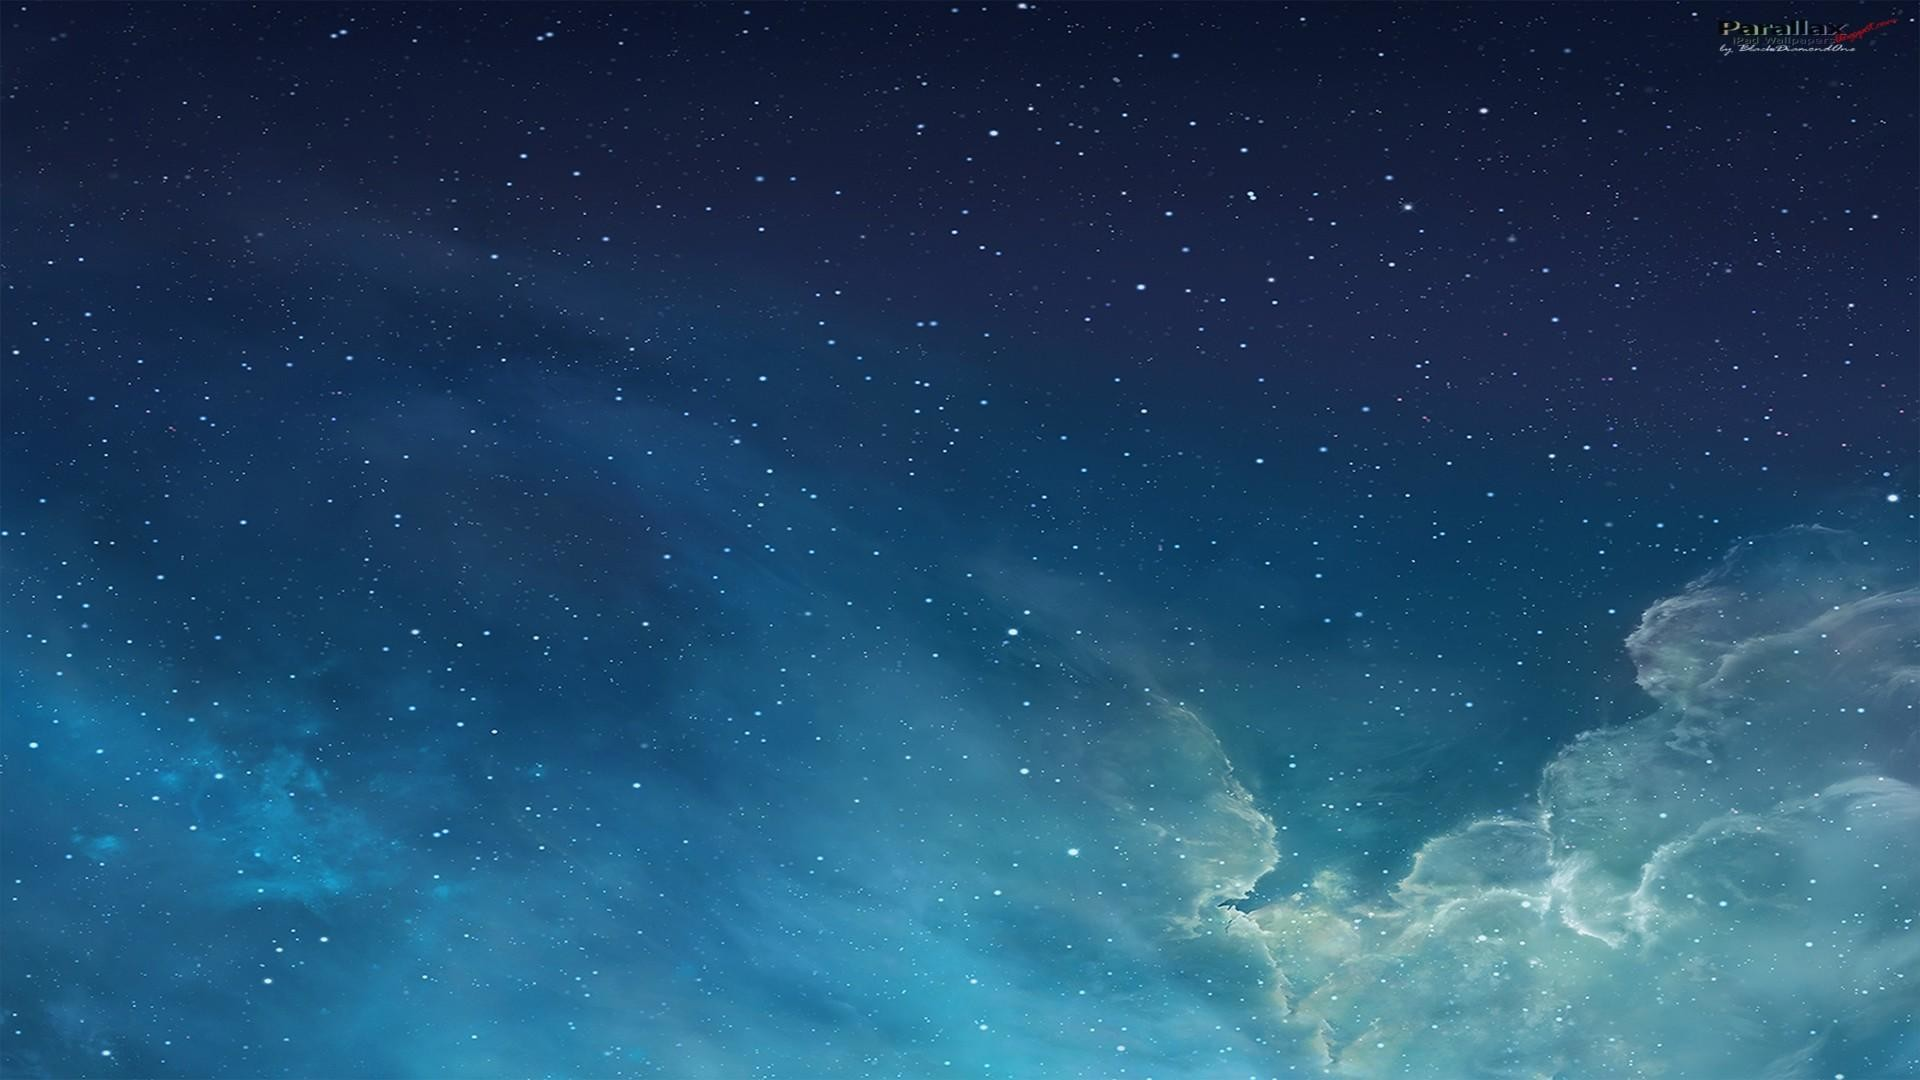 1920x1080 Starry Night wallpapers for iphone